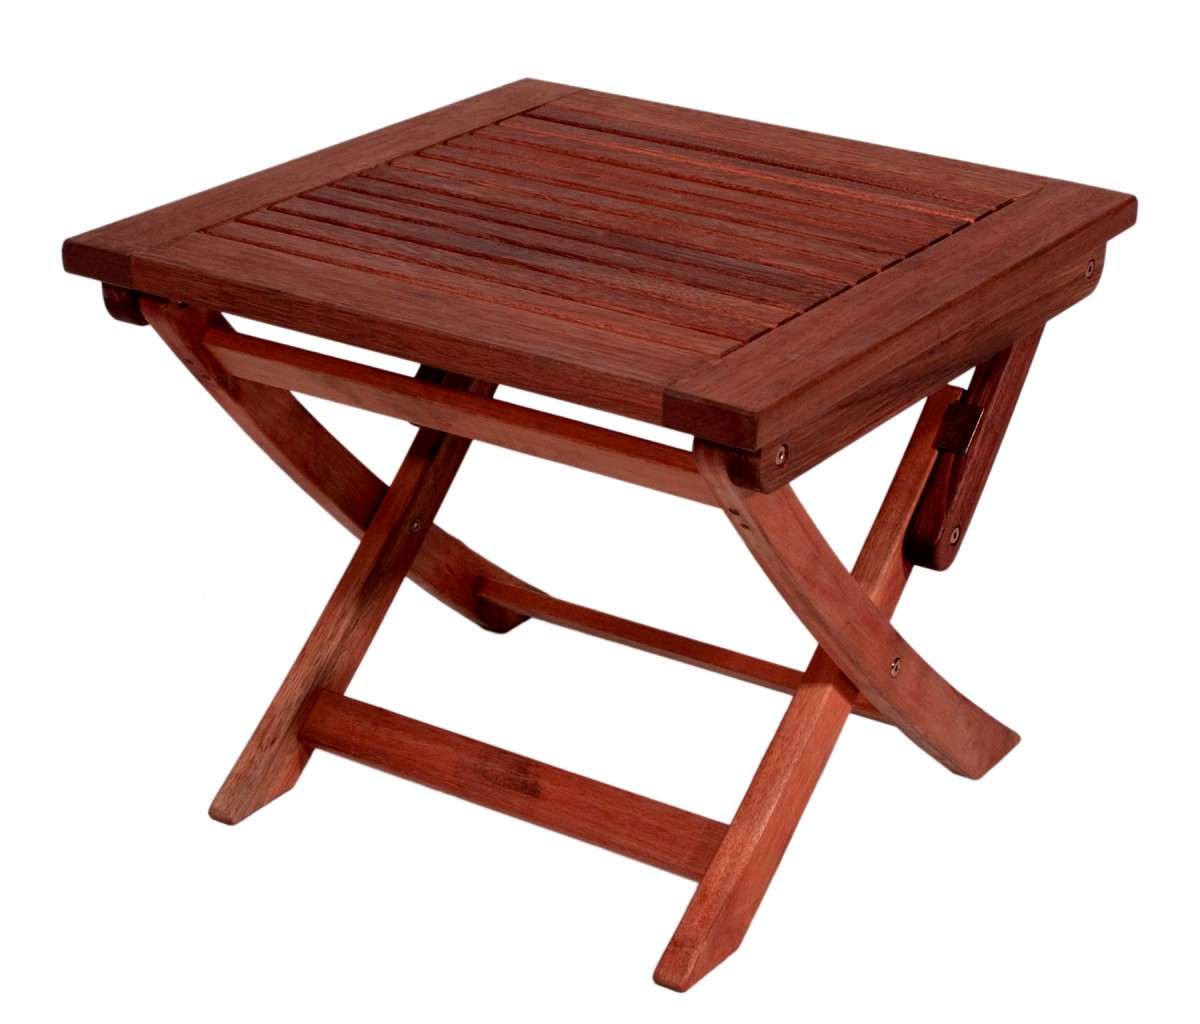 Table basse sumatra mobilier location - Petites tables basses de salon ...